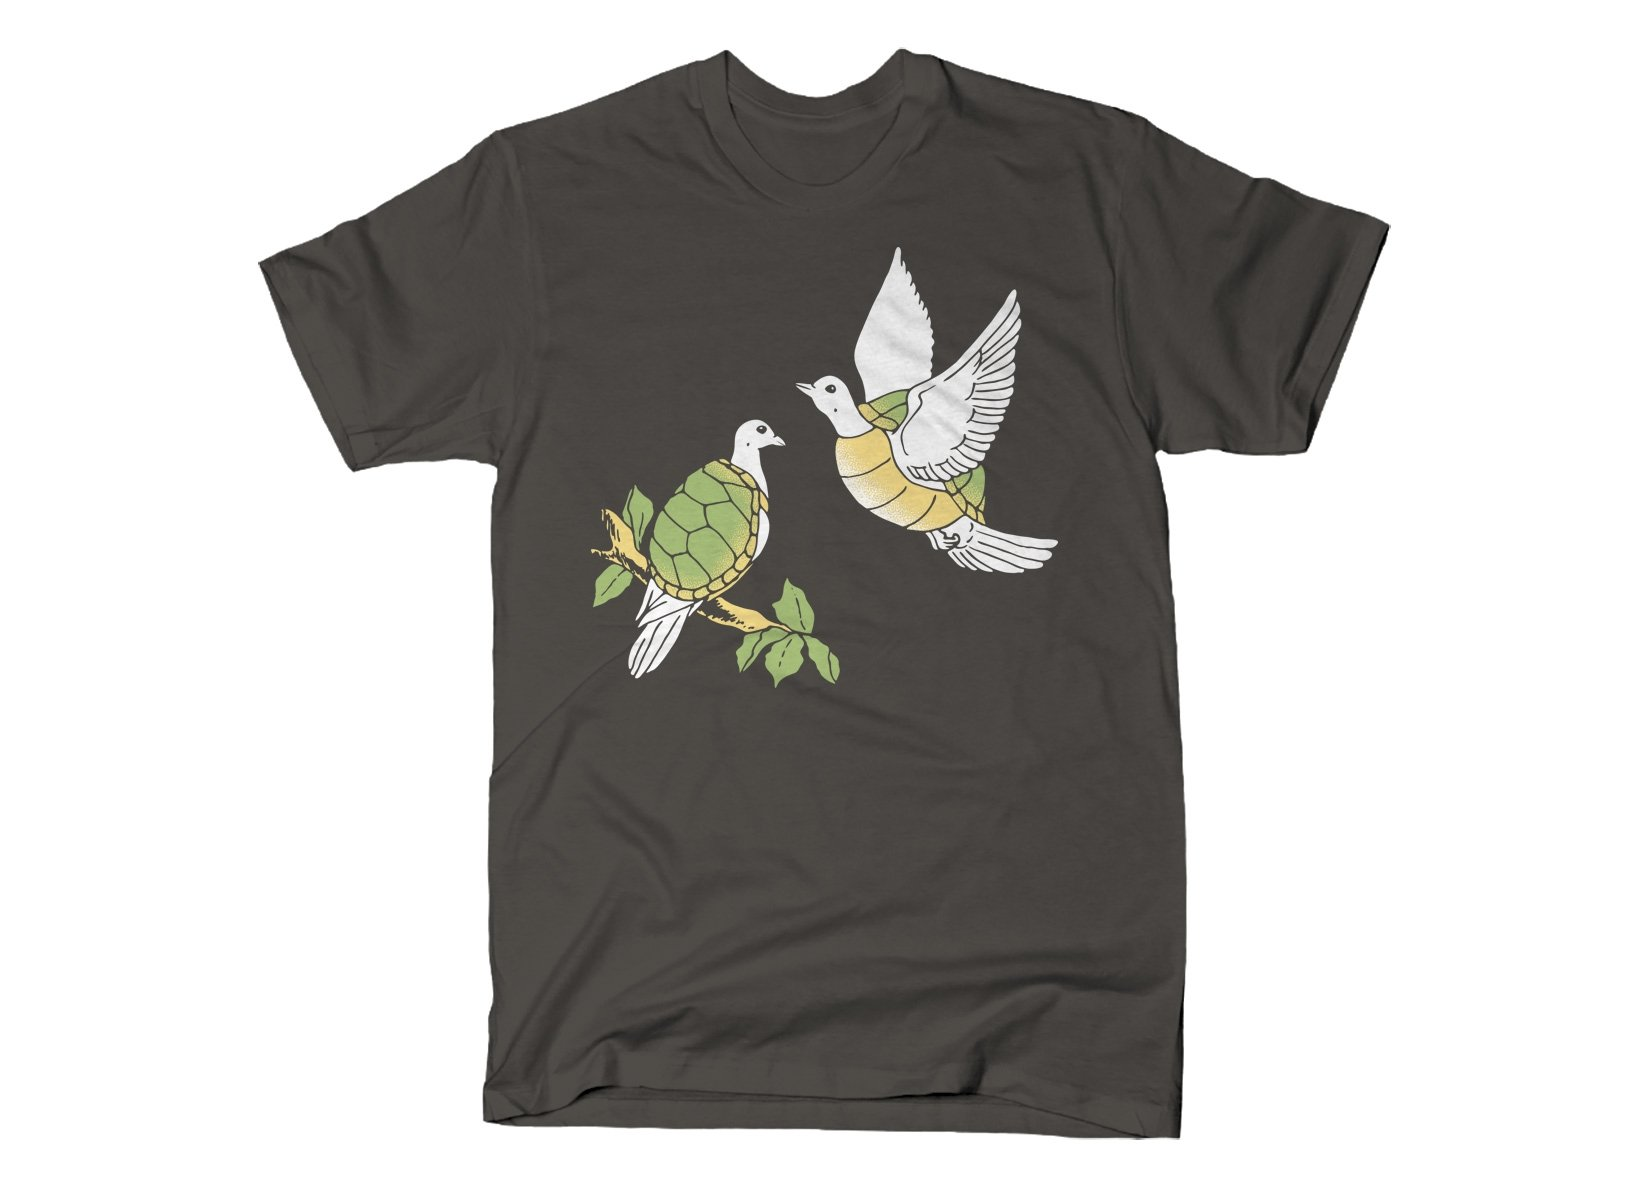 Two Turtle Doves on Mens T-Shirt